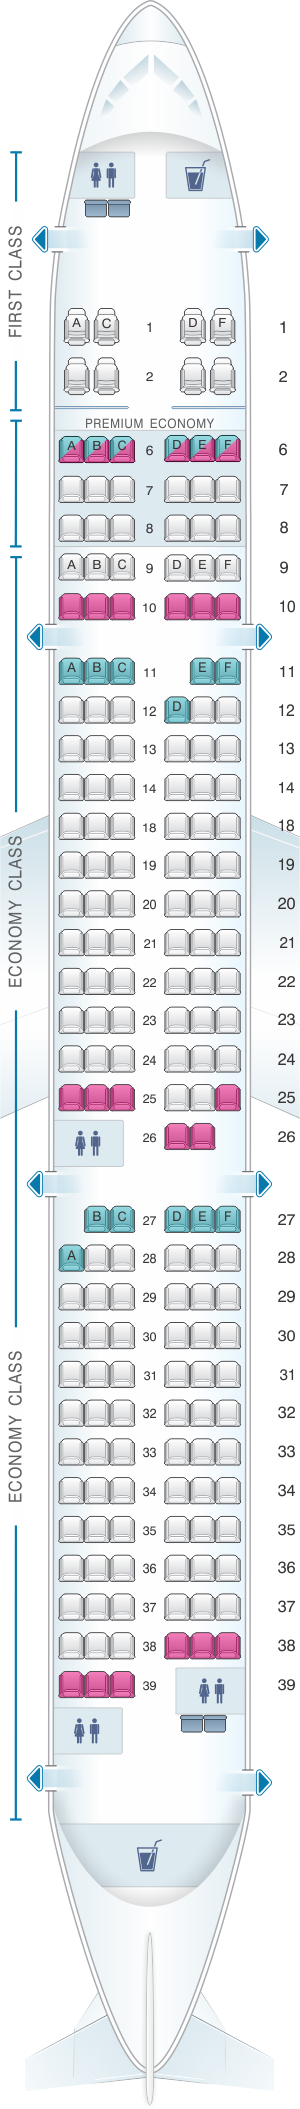 Seat map for Alaska Airlines - Horizon Air Airbus A321 NEO